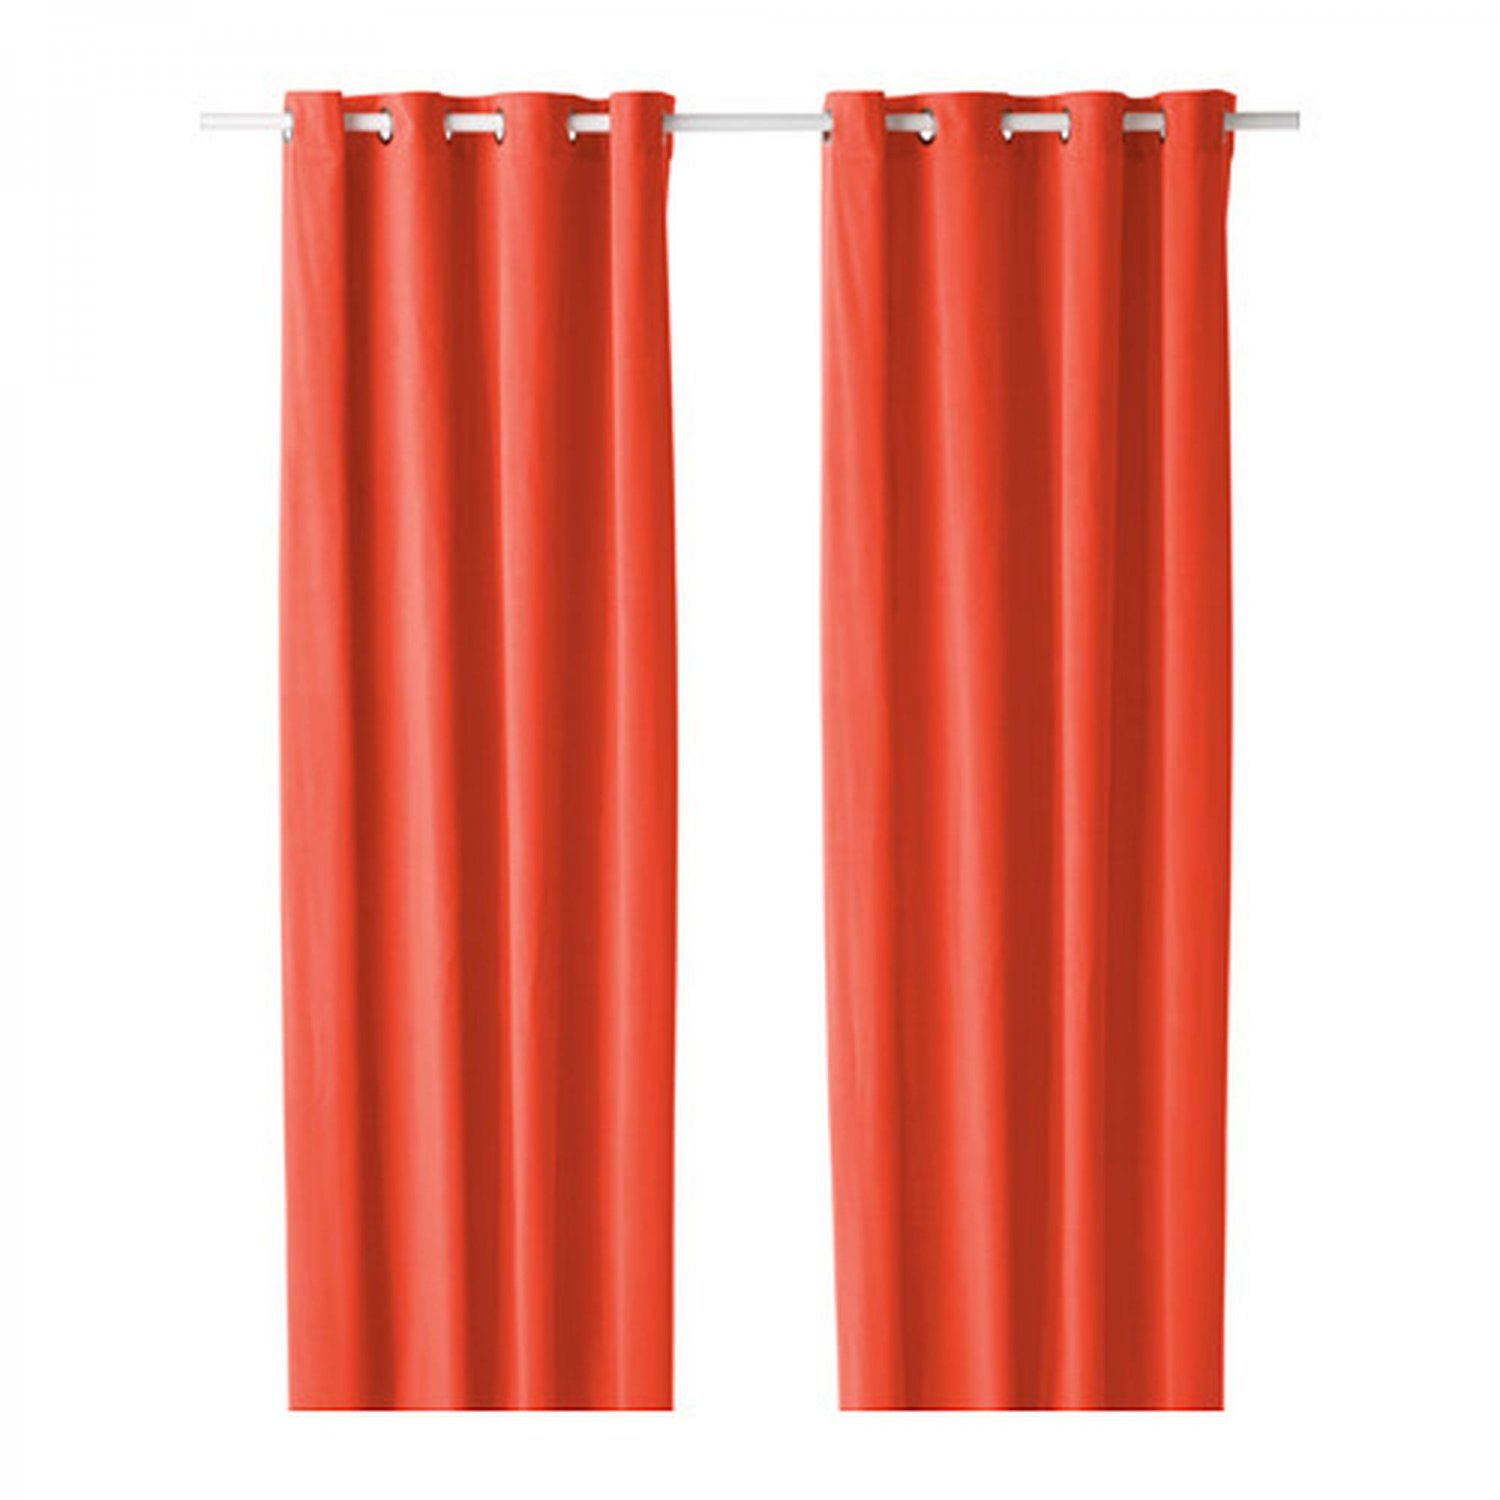 ikea sanela curtains drapes 2 panels orange velvet 98